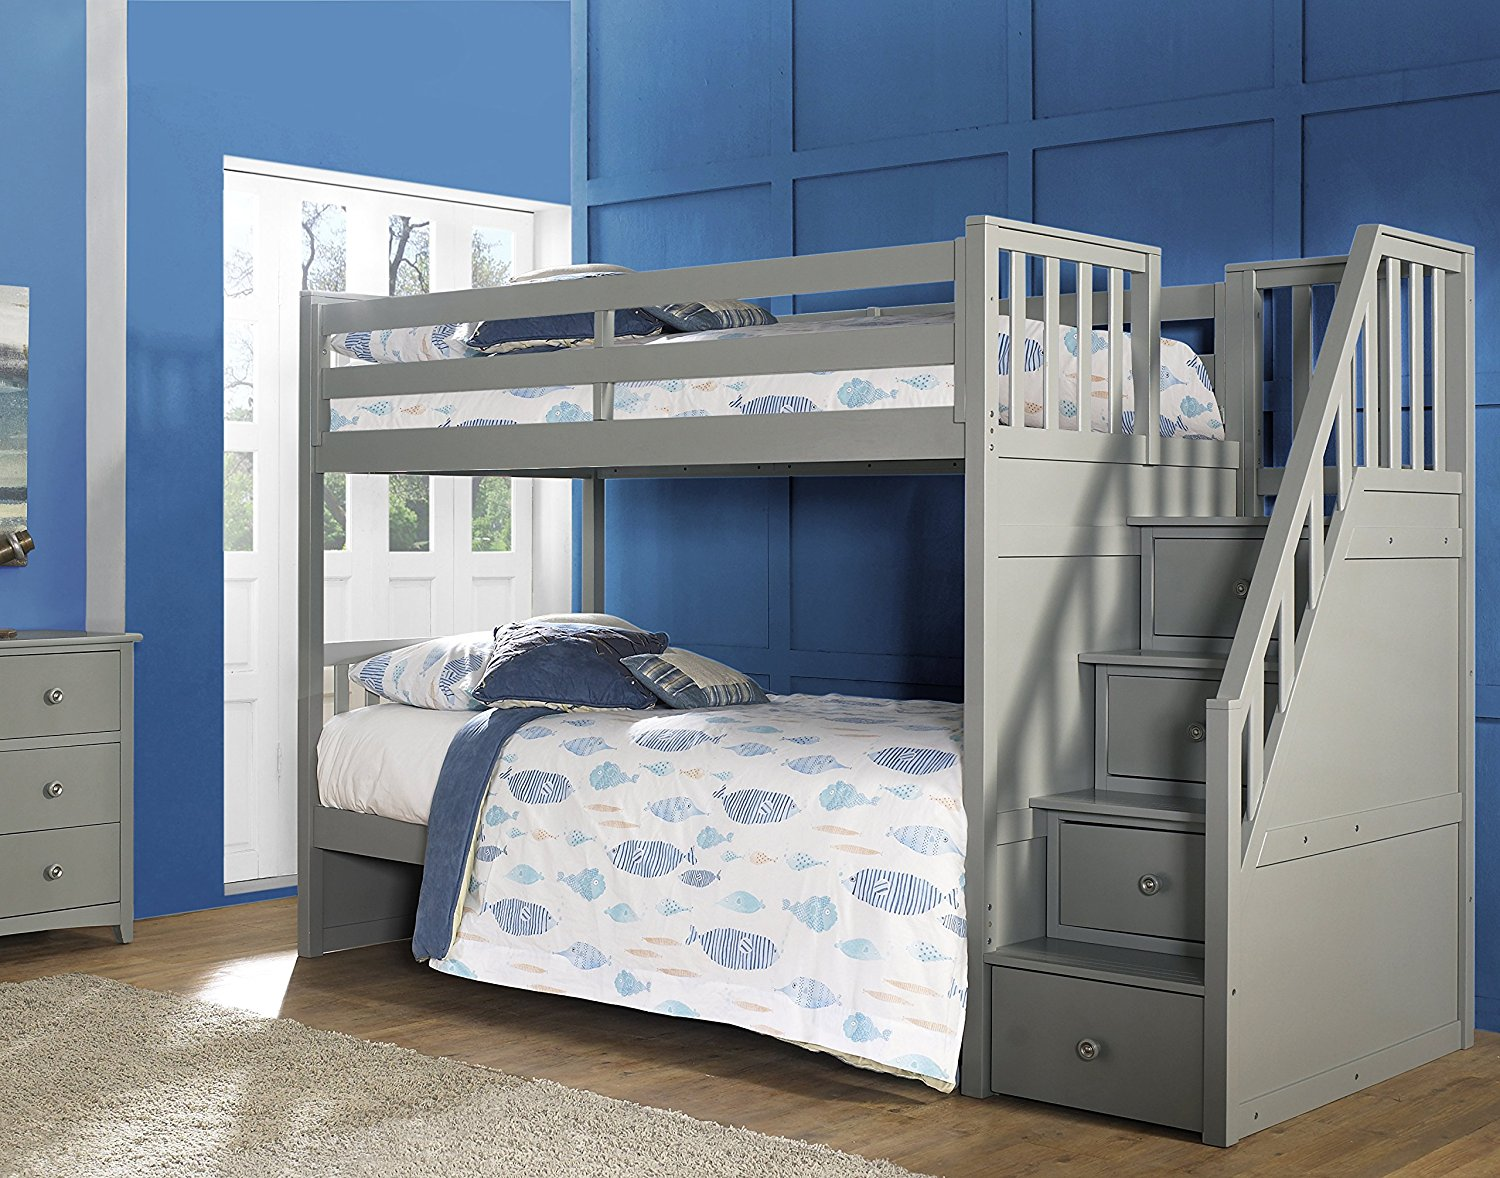 Cheap Stair Step Bunk Bed Find Stair Step Bunk Bed Deals On Line At